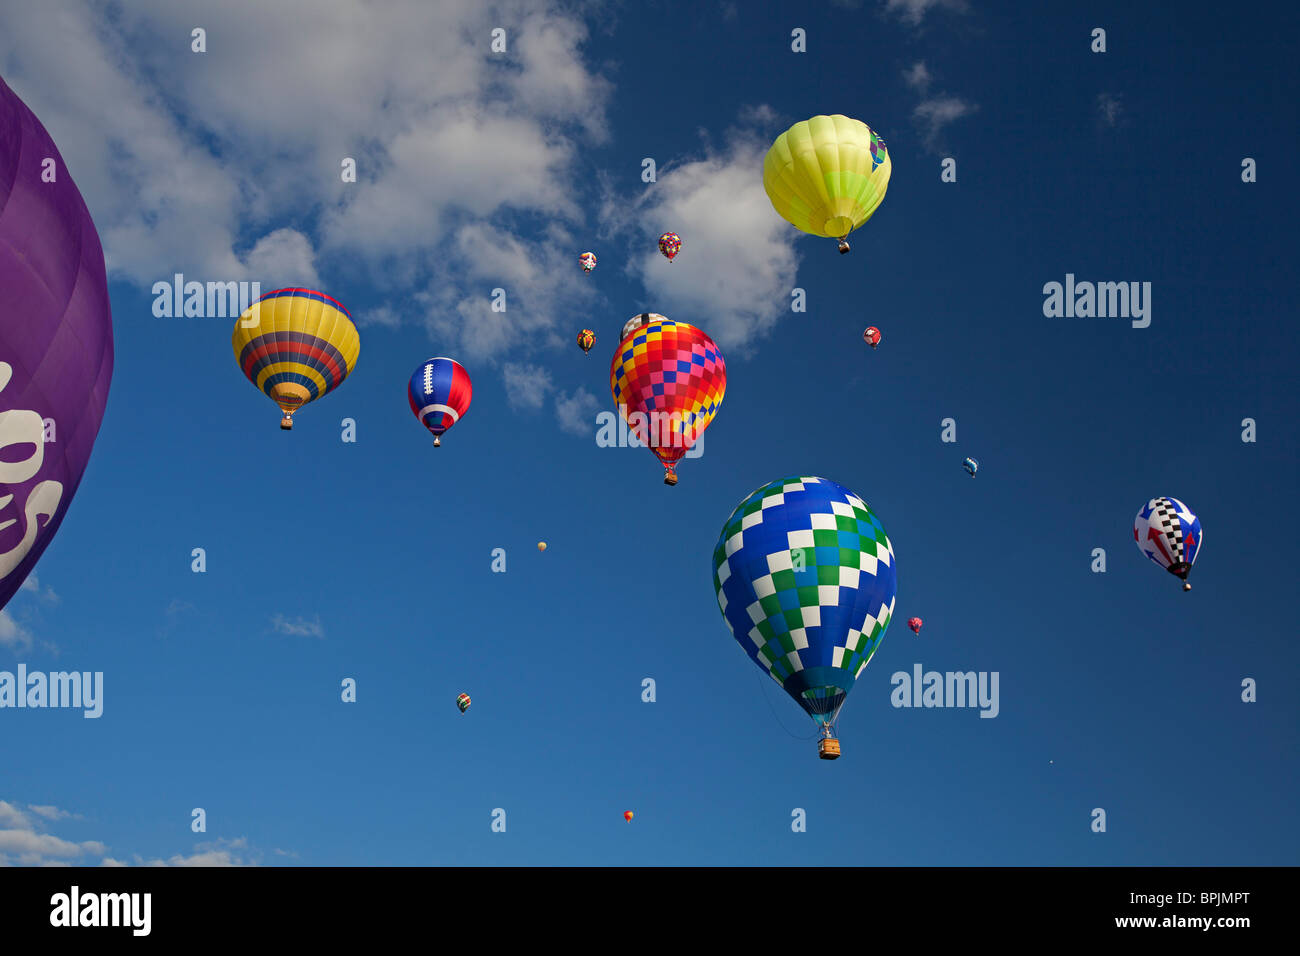 U.S. National Hot Air Balloon Championship Competition Stock Photo